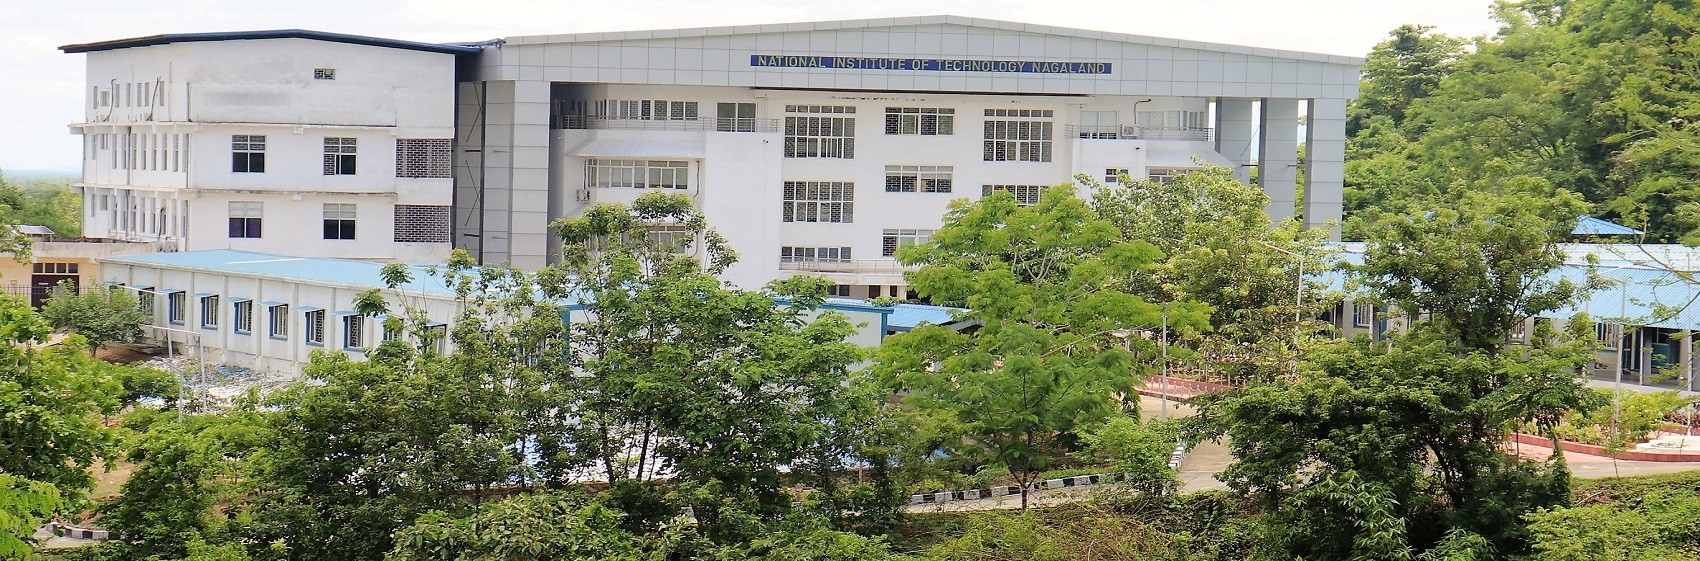 NIT (National Institute of Technology), Dimapur Image